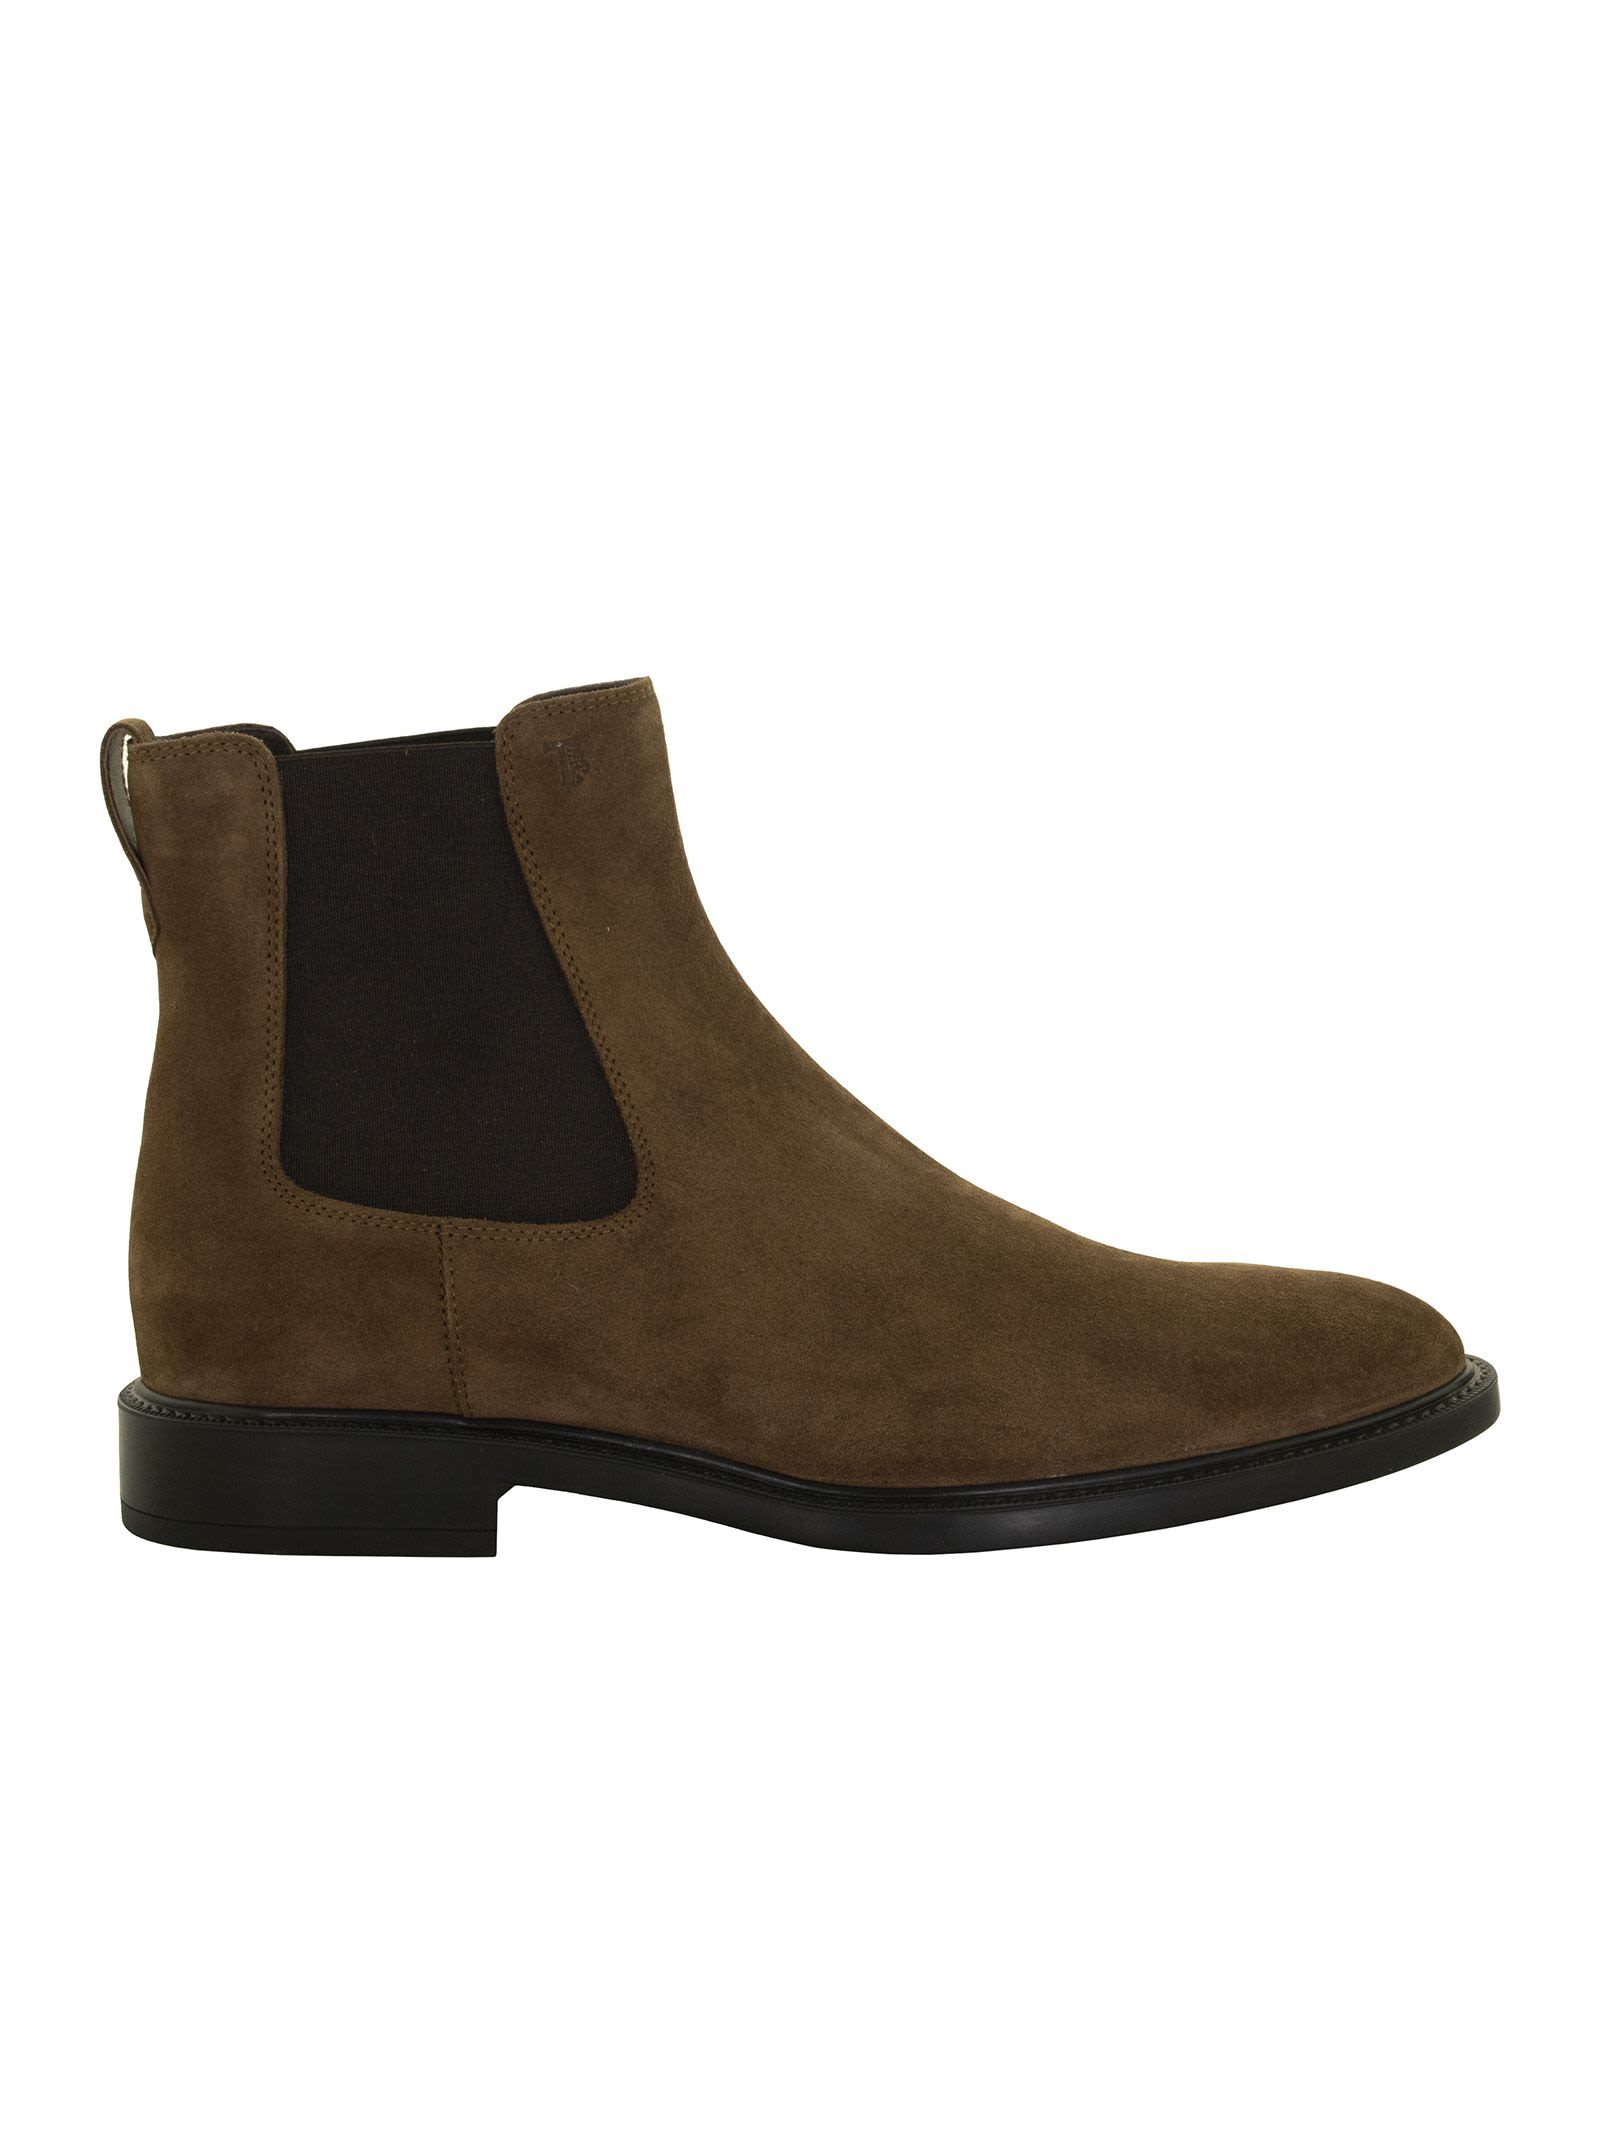 Tods Suede Leather Ankle Boot